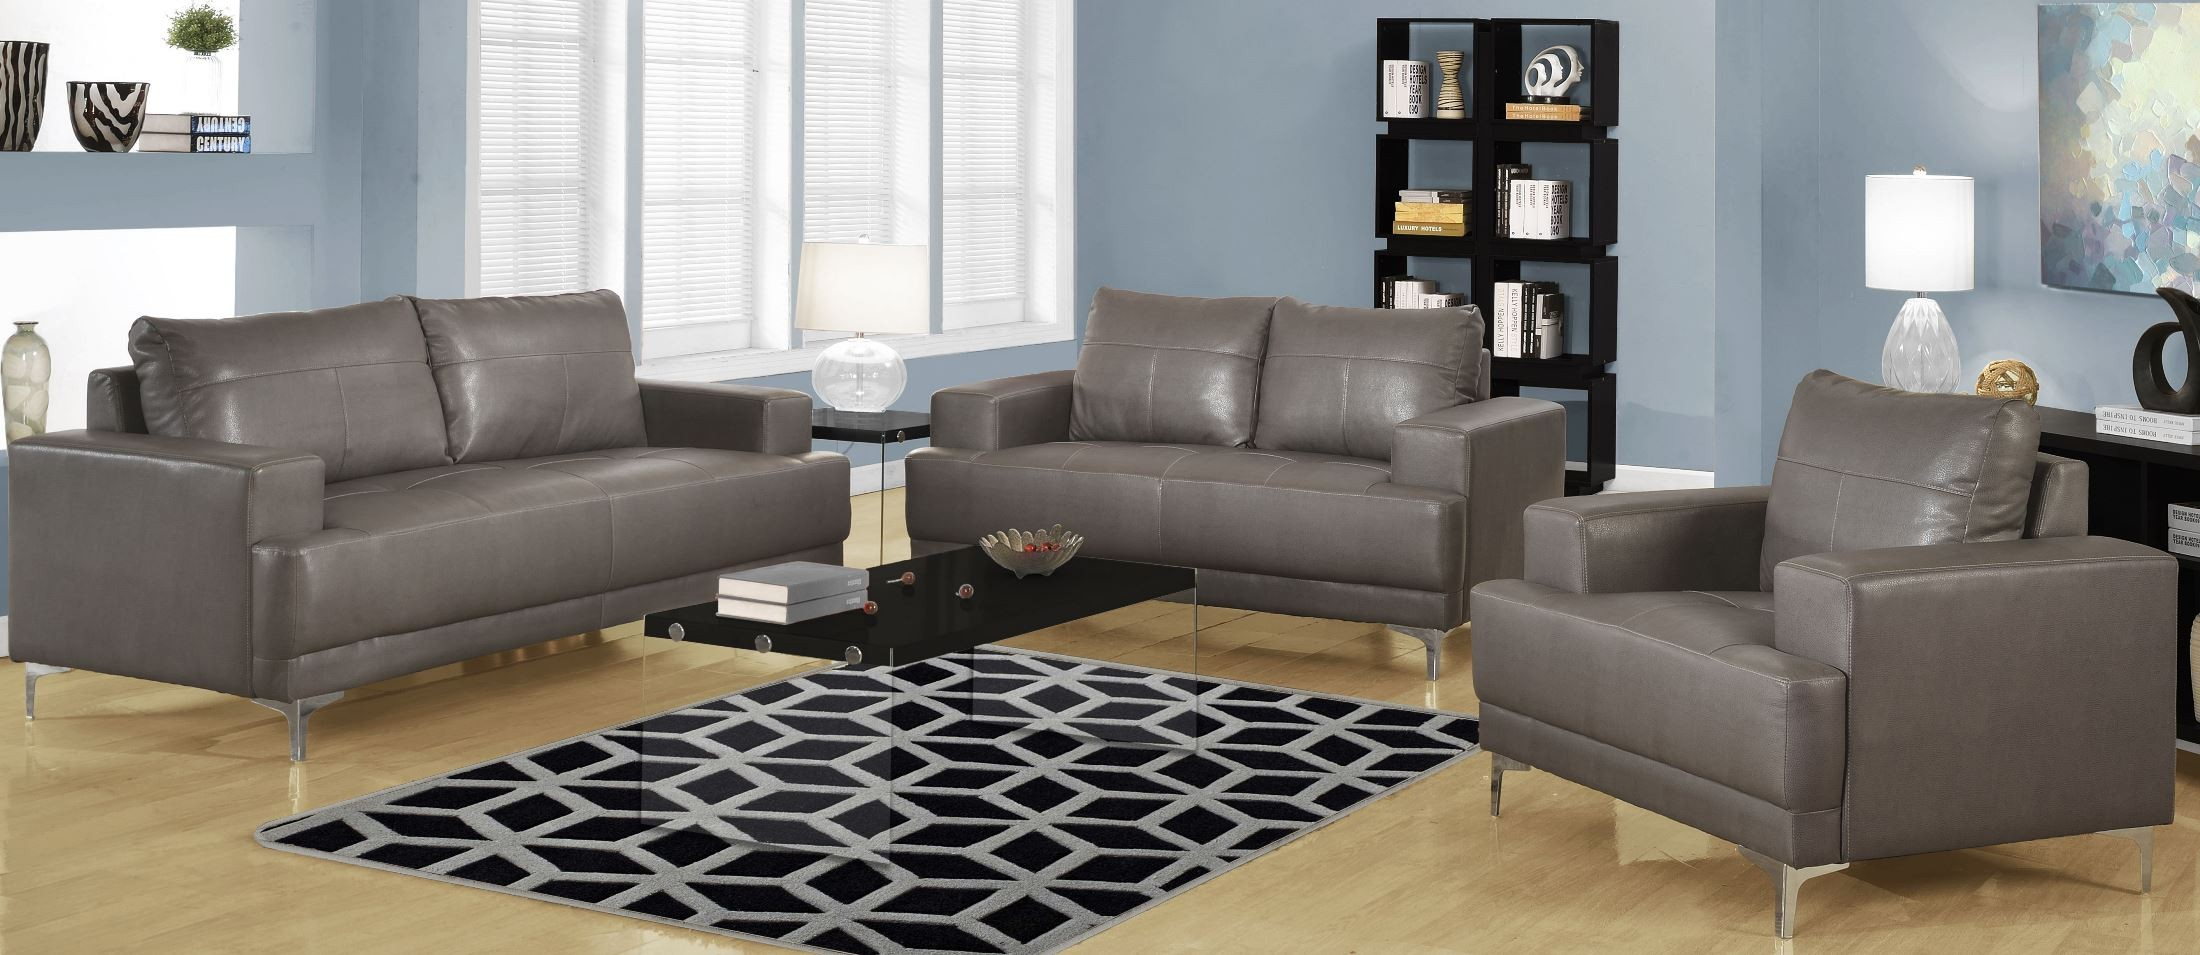 8603gy Charcoal Gray Bonded Leather Living Room Set 8603gy Monarch